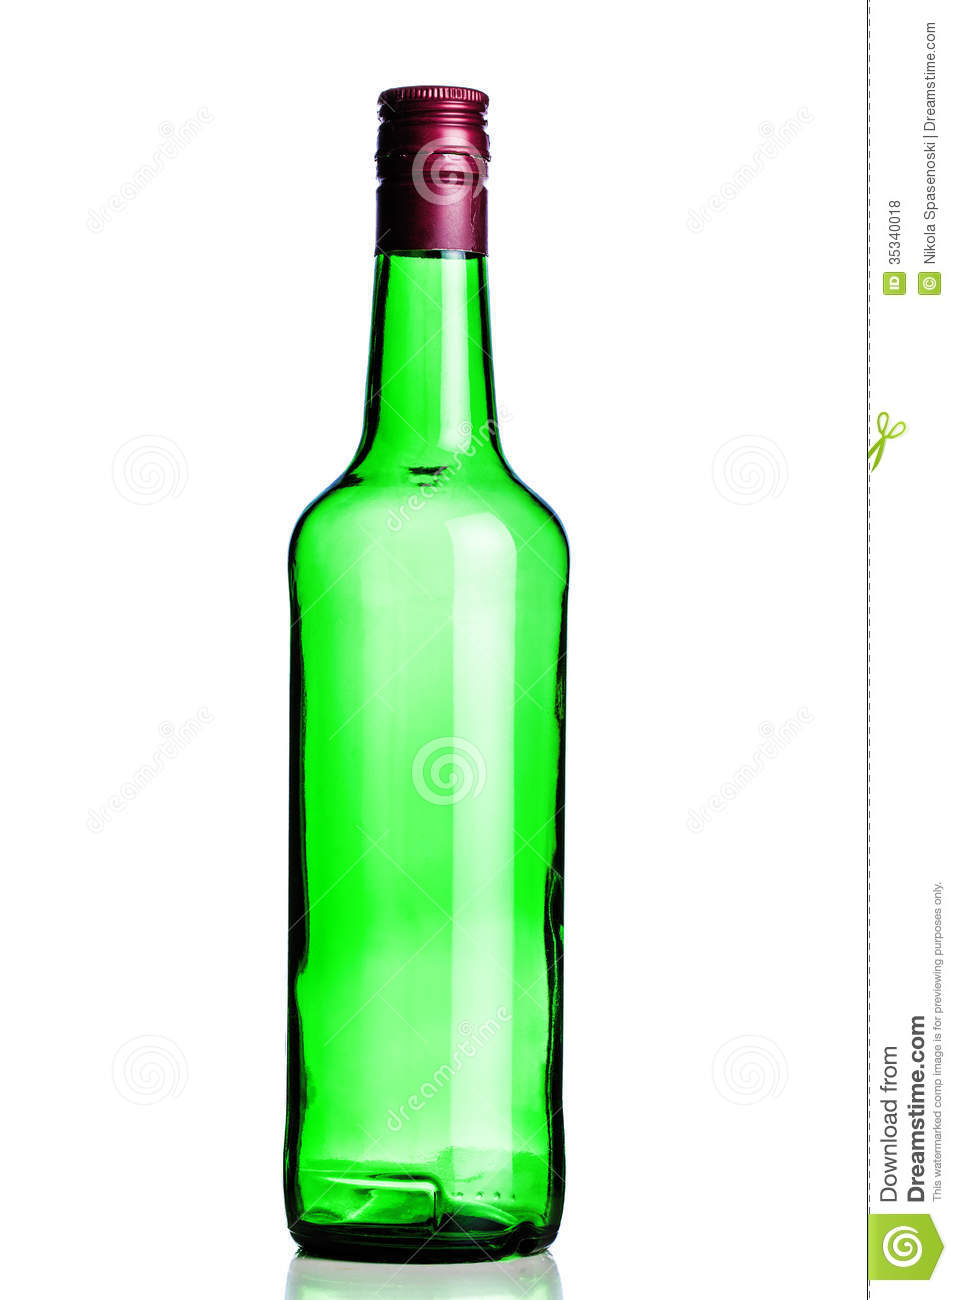 Empty Booze Bottle